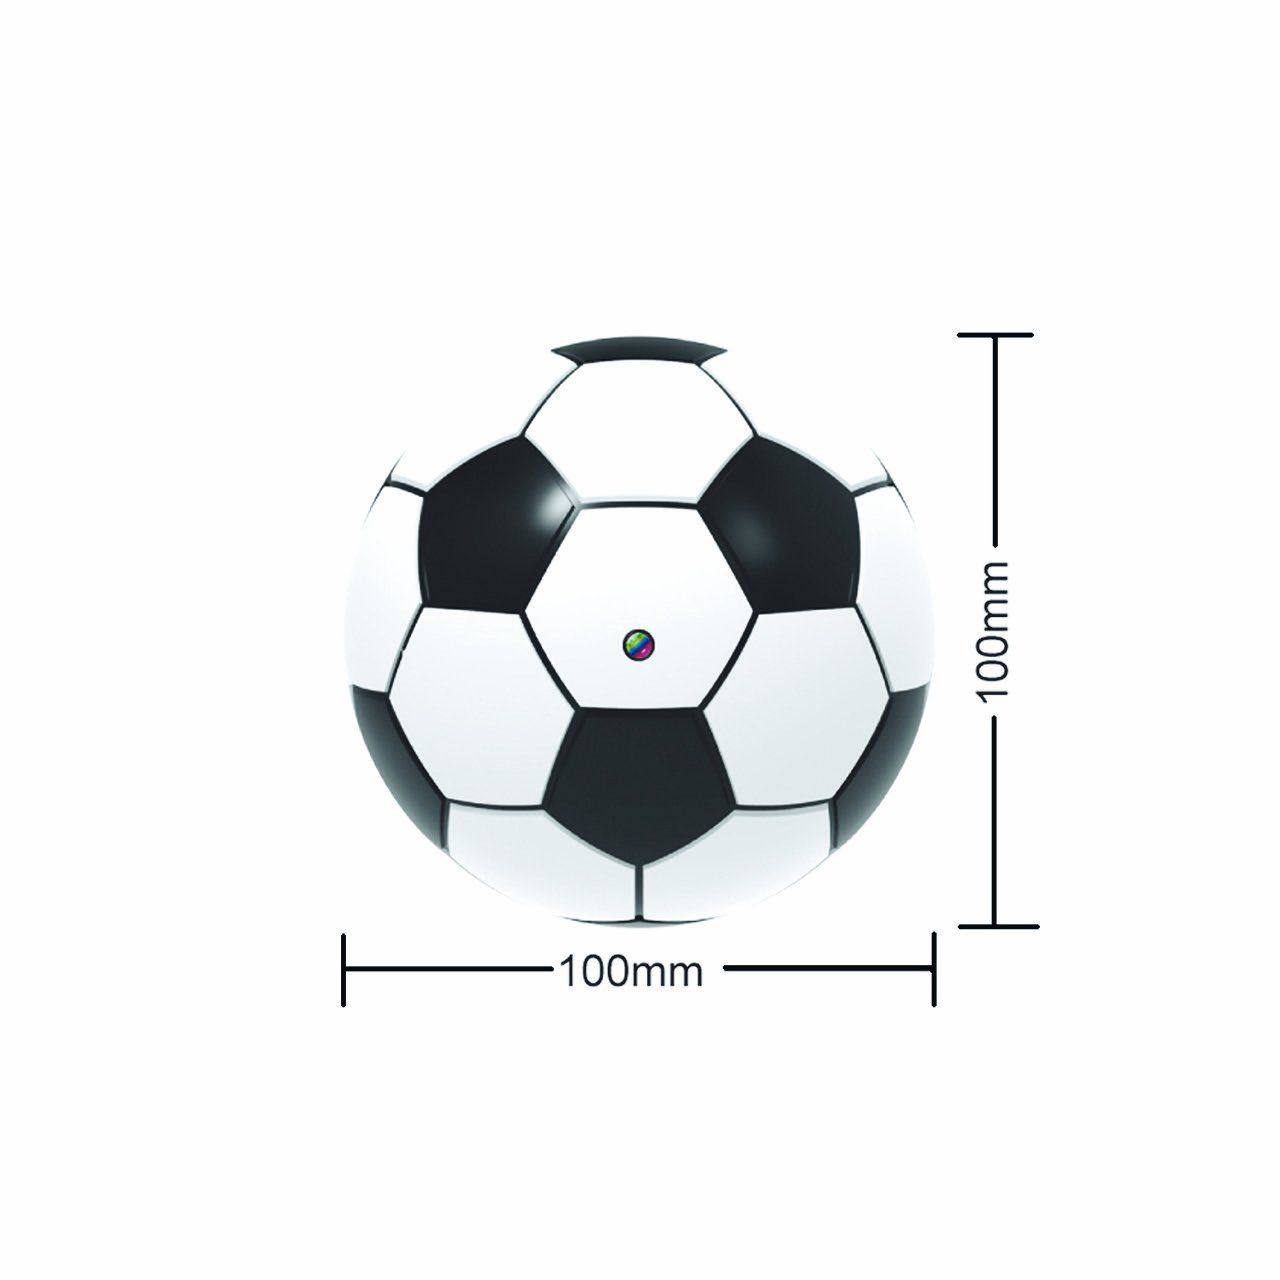 2mp X43 Soccer Ball Drone A Football Drone Remote Controlled